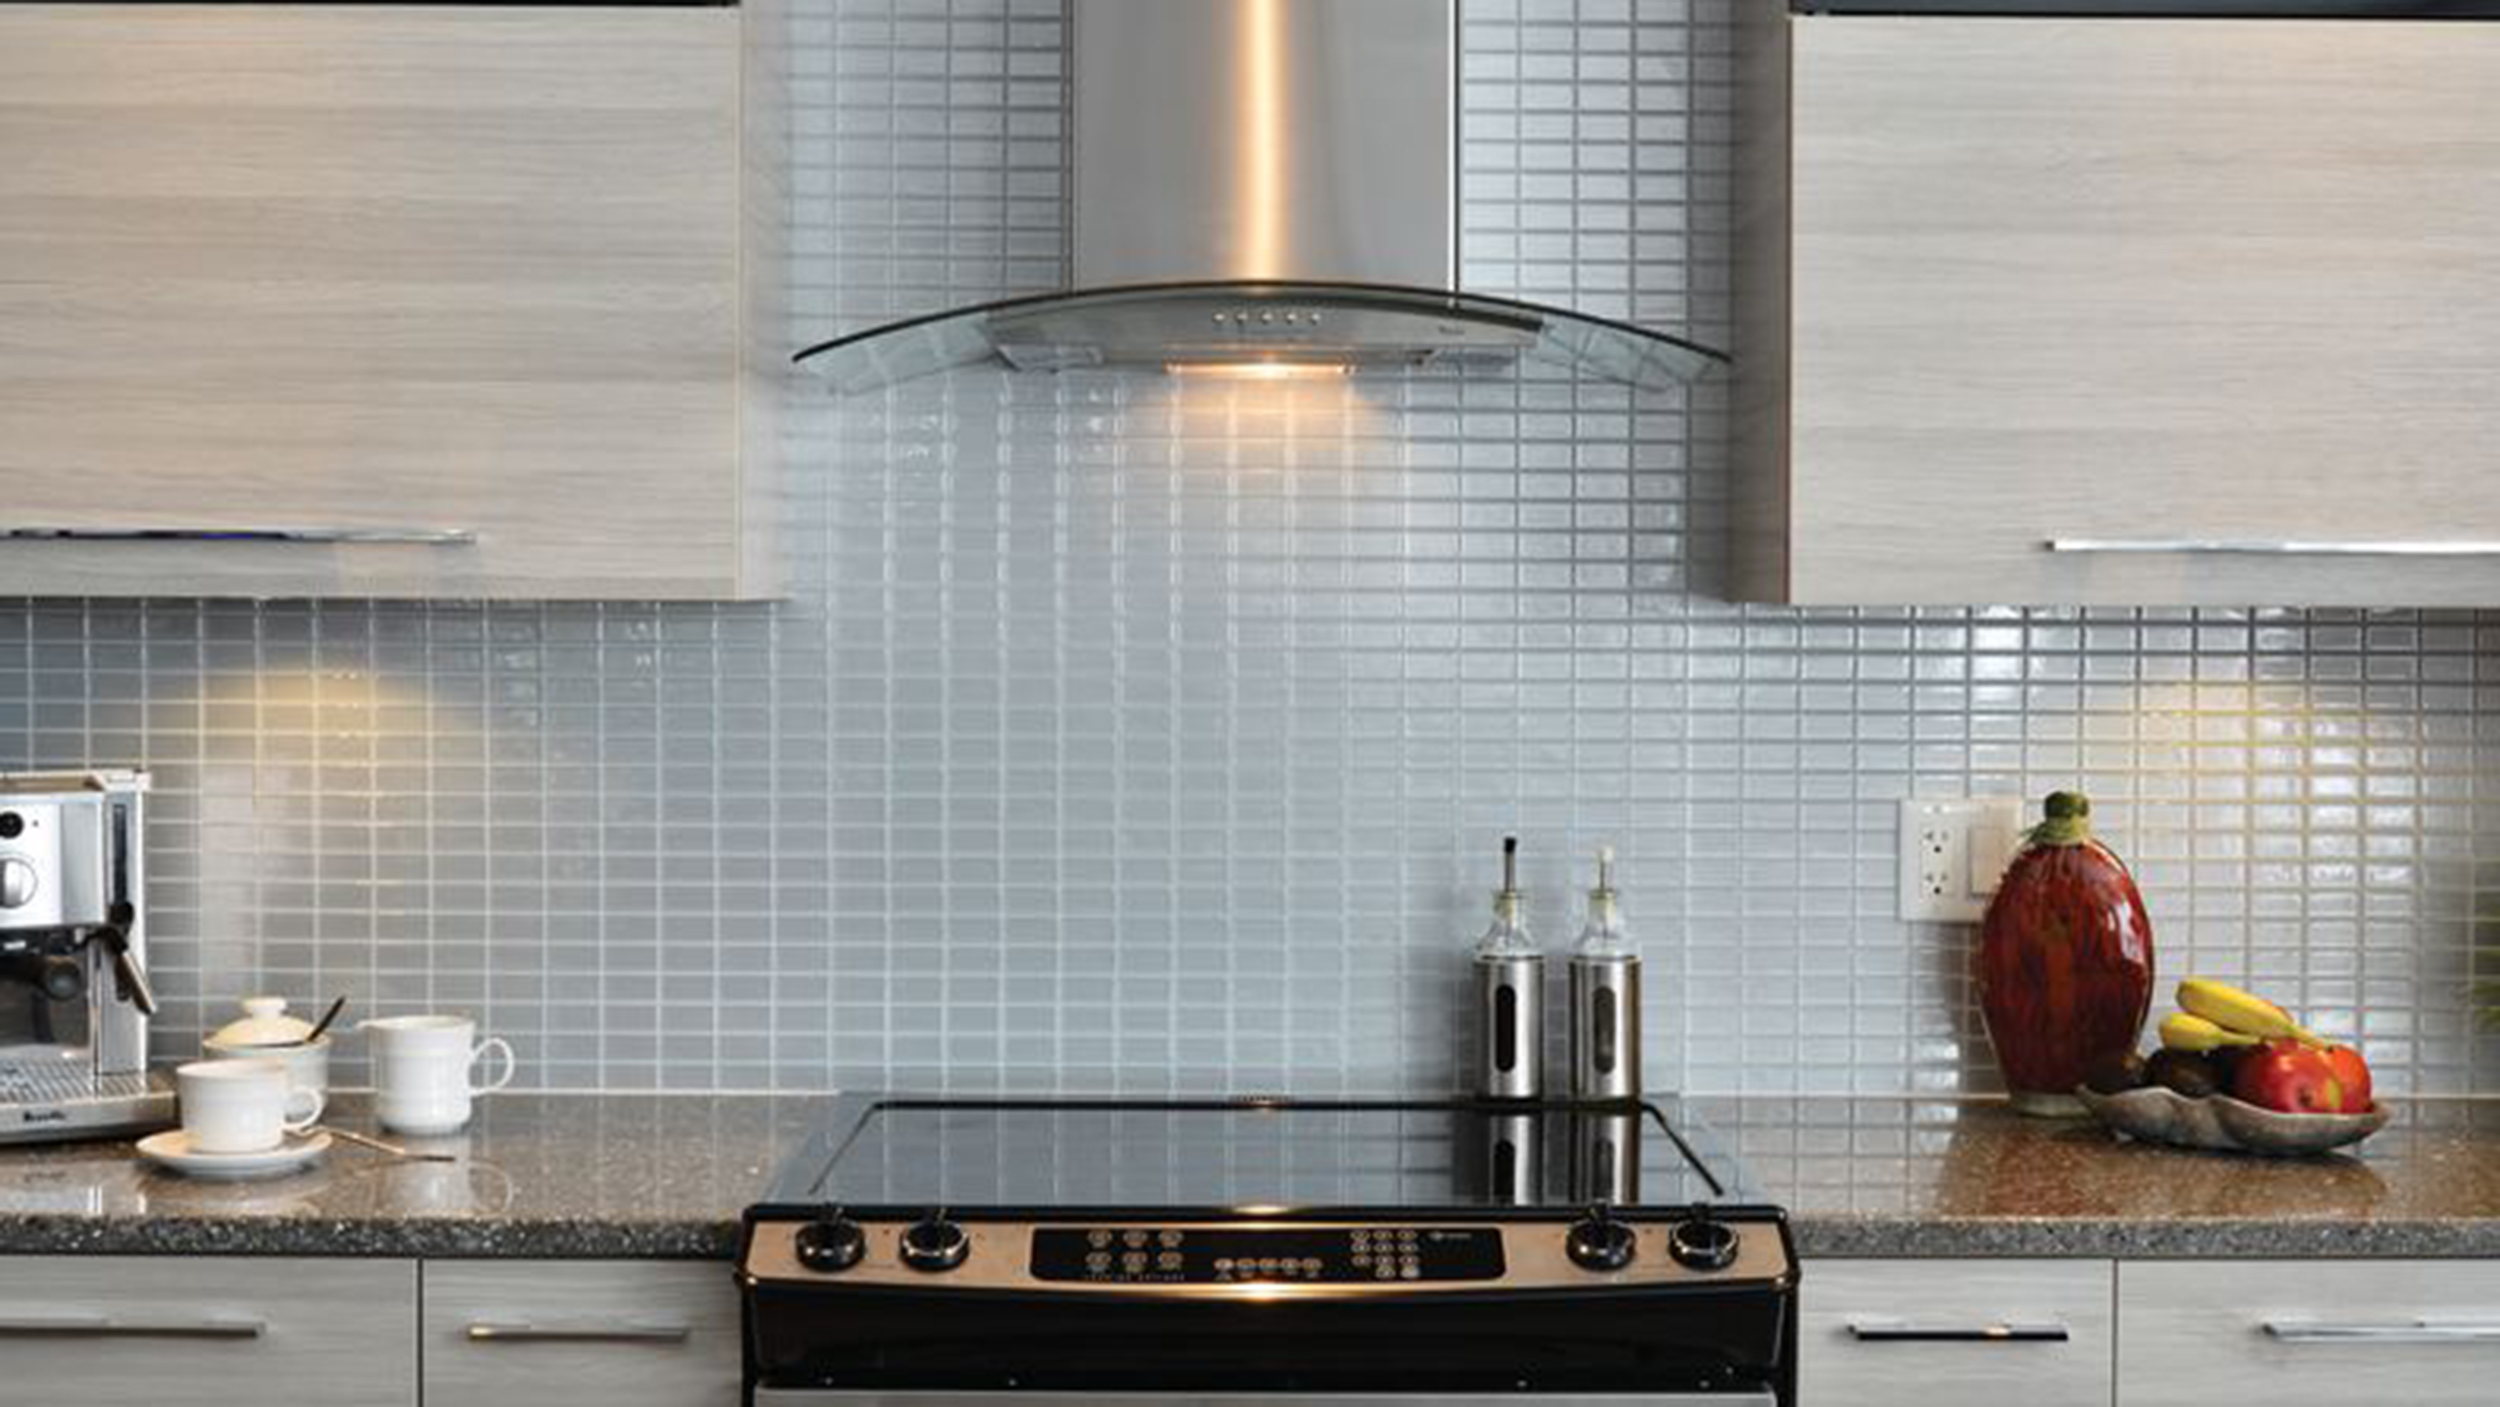 Superb Kitchen Tile Makeover: Use Smart Tiles To Update Your Backsplash